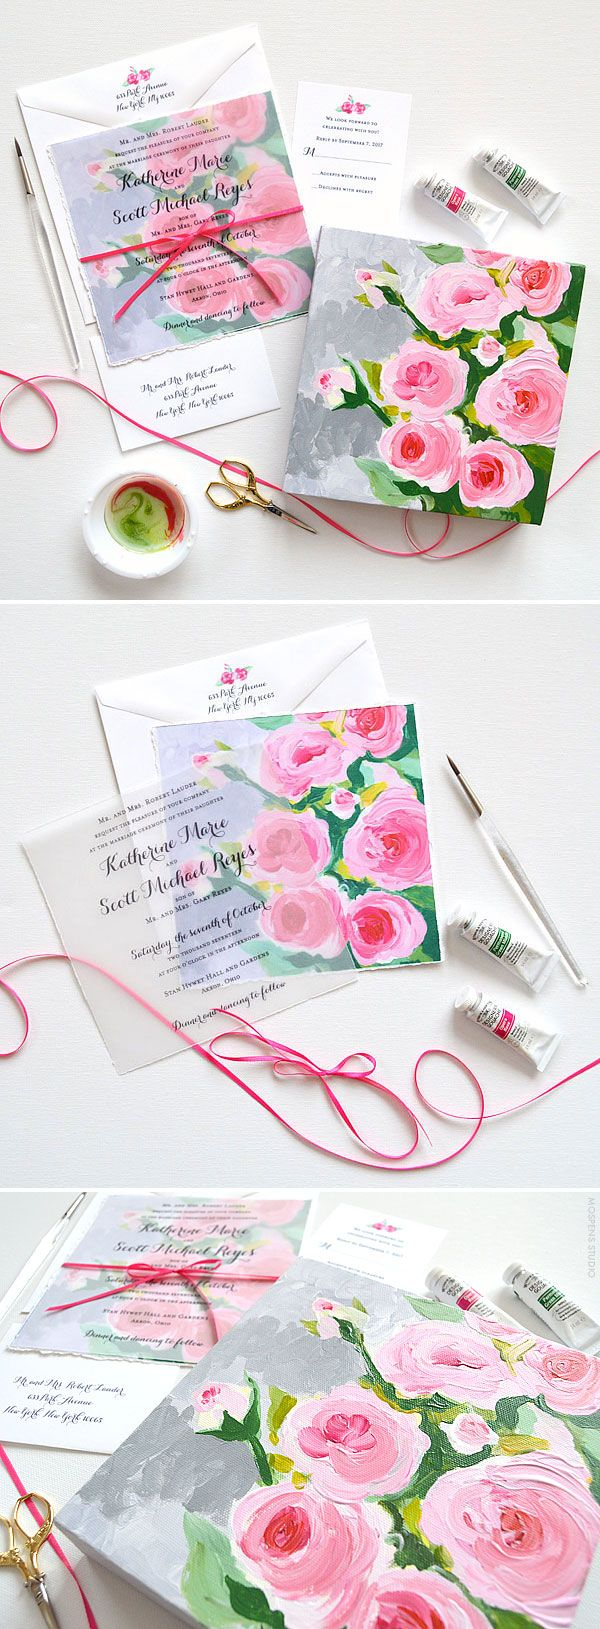 Floral Fine Art Hand Painted Wedding Invitations - The design features original acrylic painted rose flower art, hand torn edging, and a hand tied satin ribbon bow. Now available! - www.mospensstudio.com